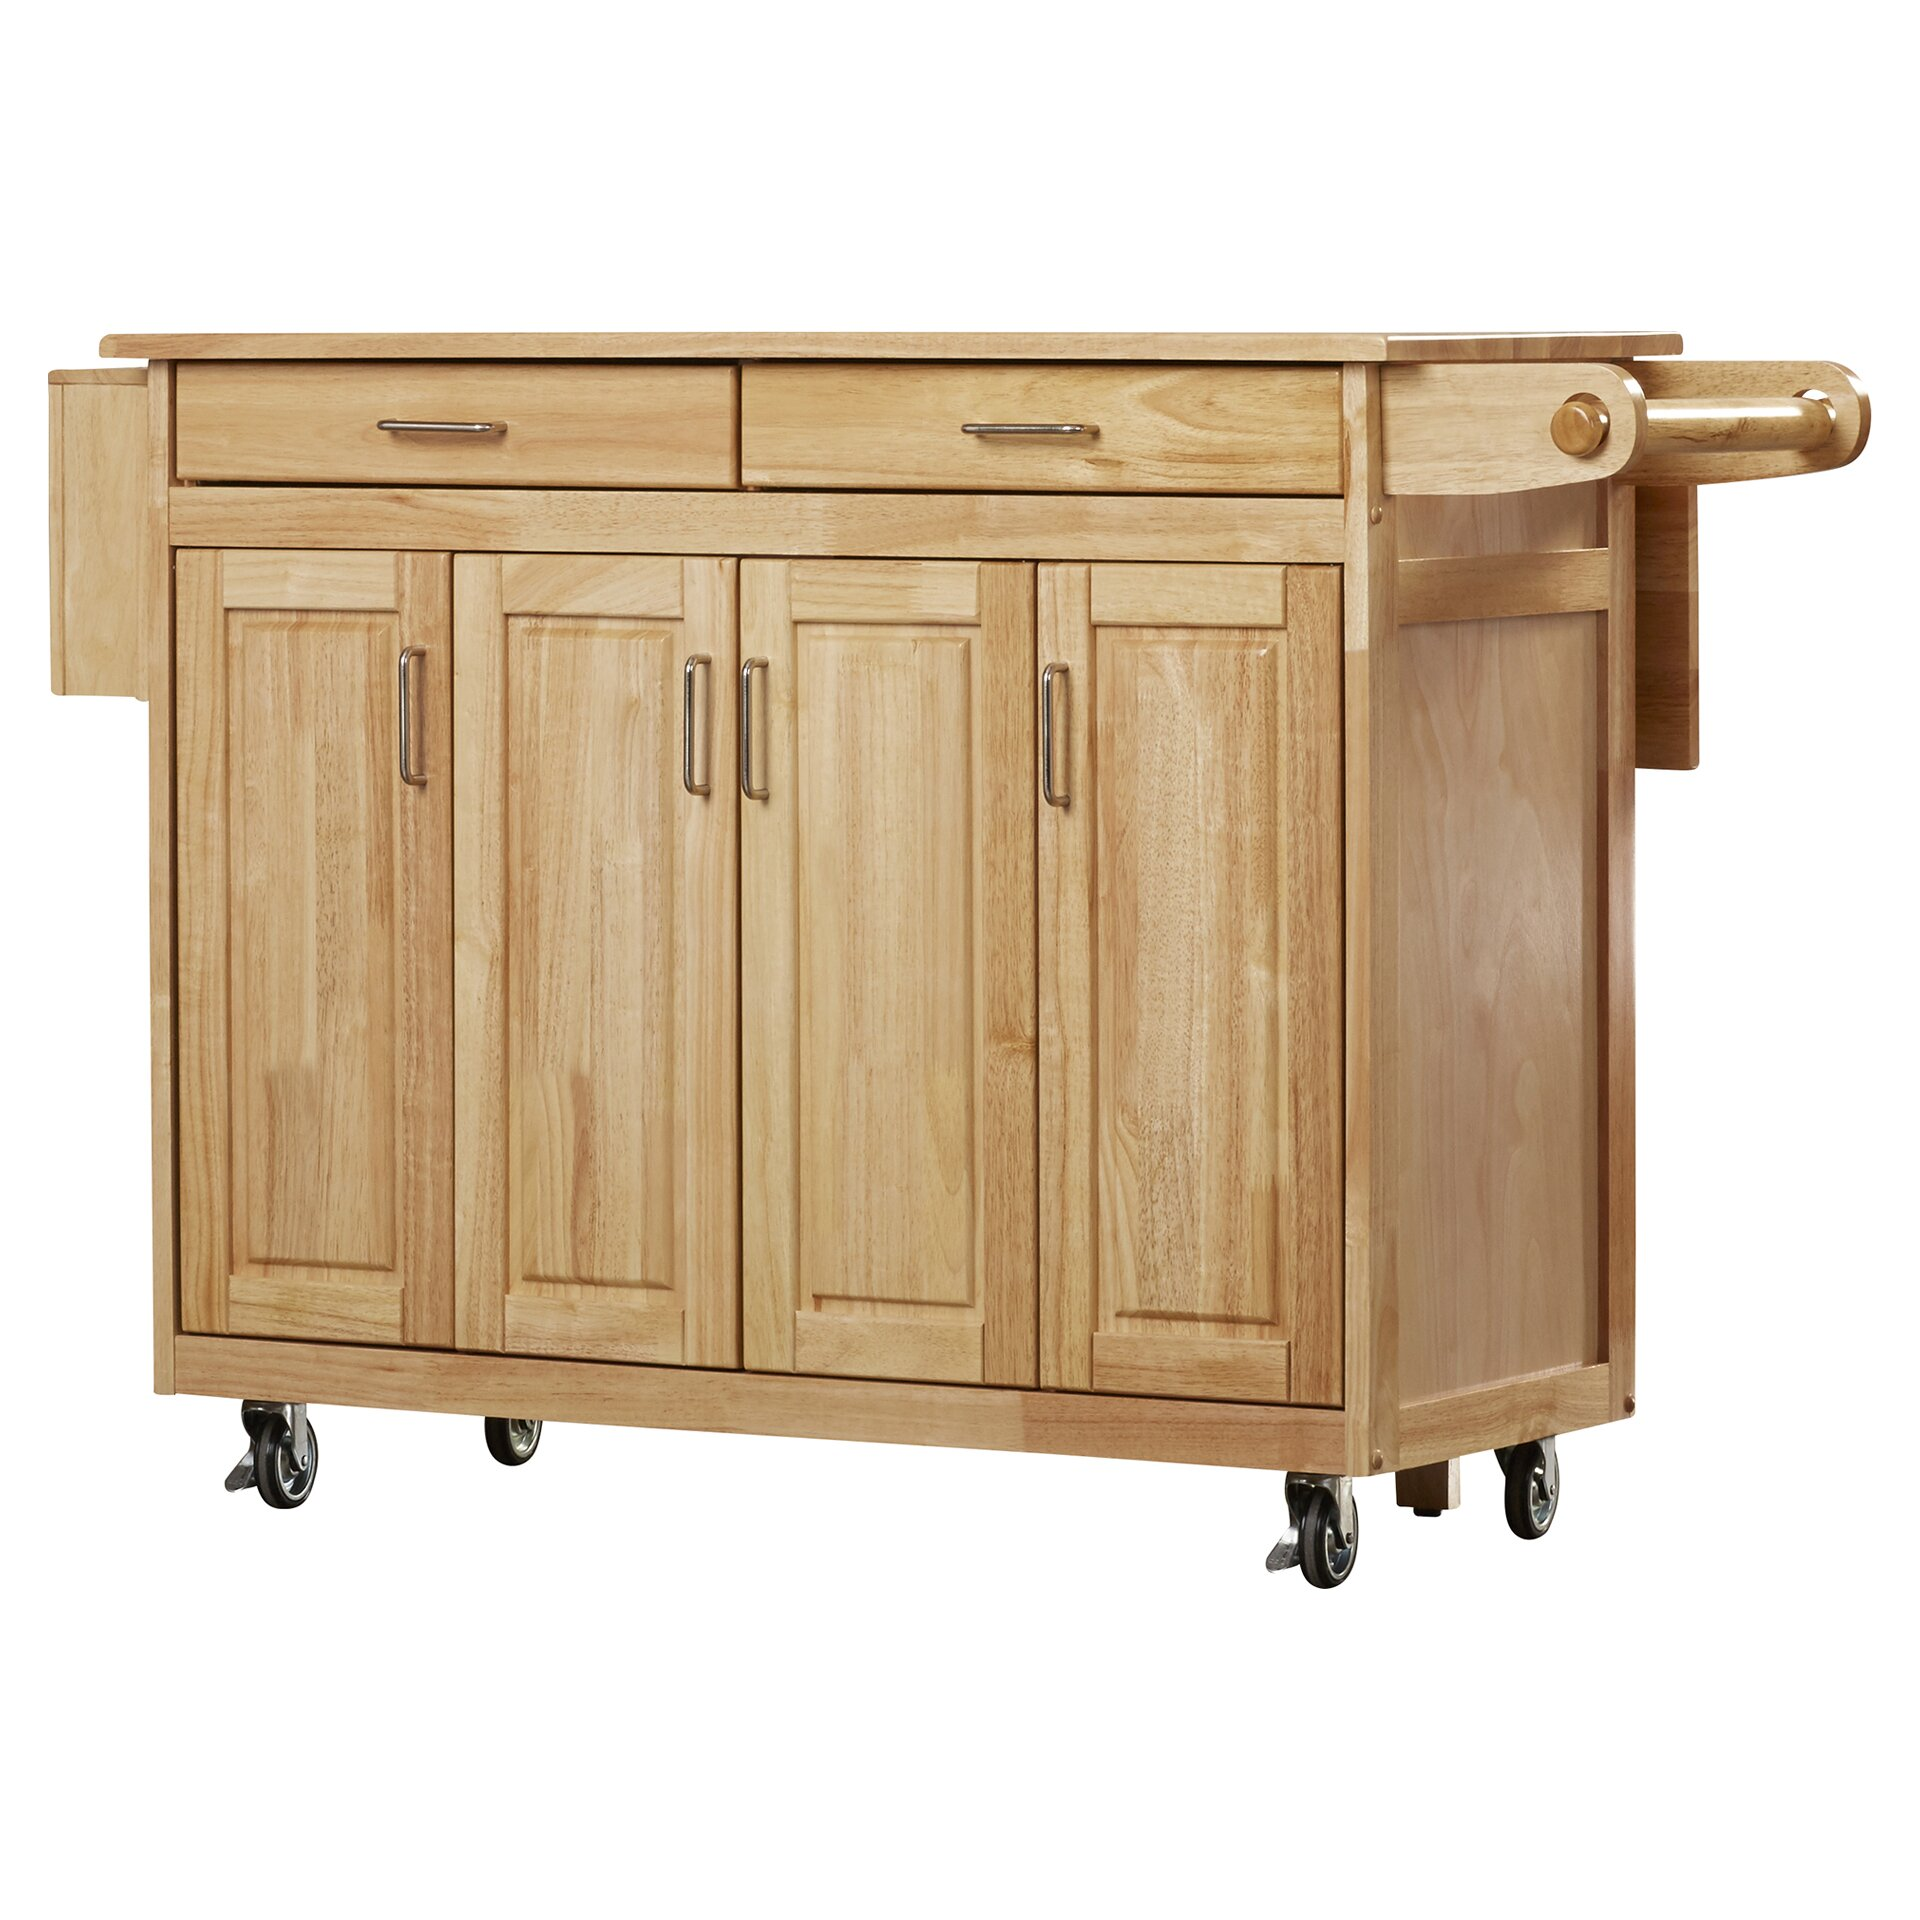 Lighting Shop Near Epping: August Grove Epping Kitchen Island & Reviews